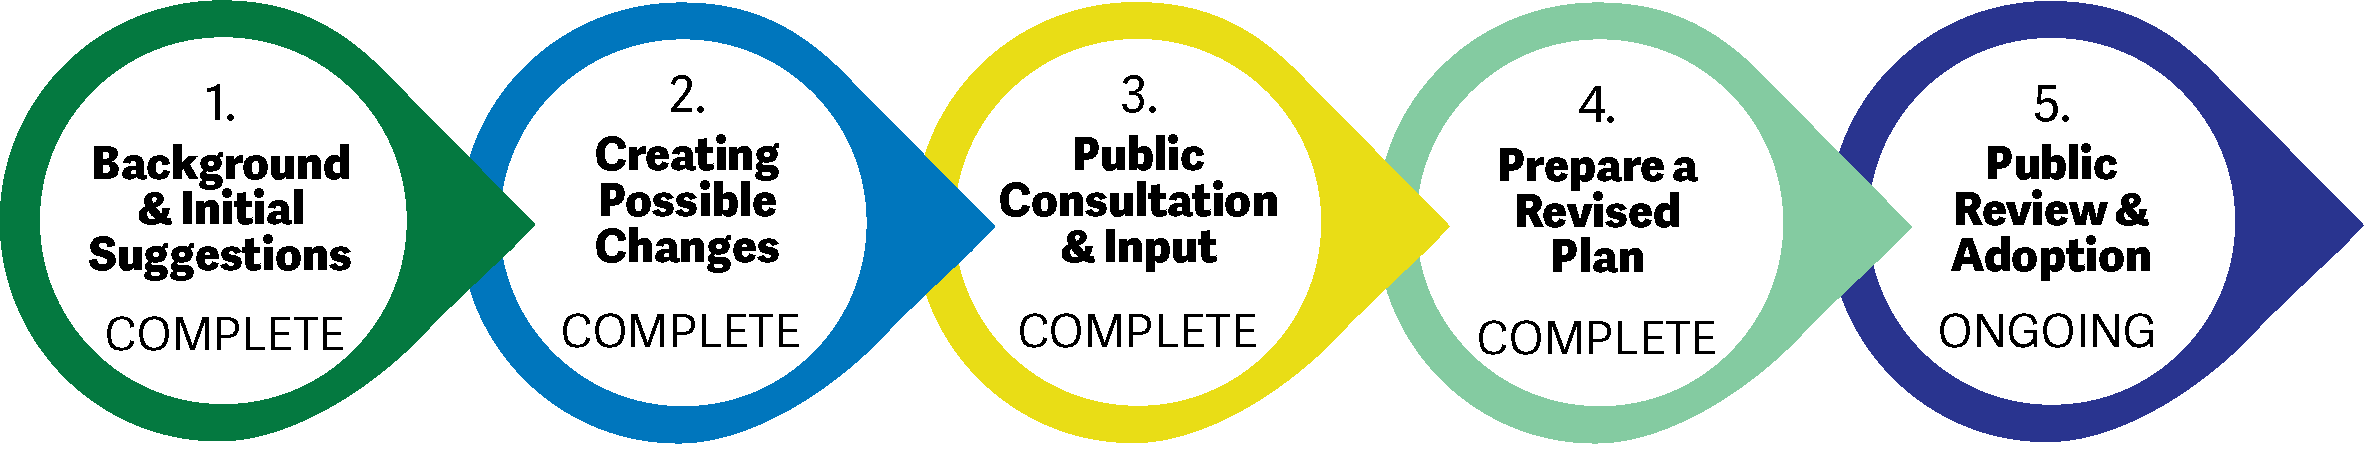 1. Background & Initial Suggestions - COMPLETE  2. Creating Possible Changes - COMPLETE  3. Public Consultation & Input - COMPLETE  4. Prepare a Revised Plan - COMPLETE  5. Public Review & Adoption - ONGOING